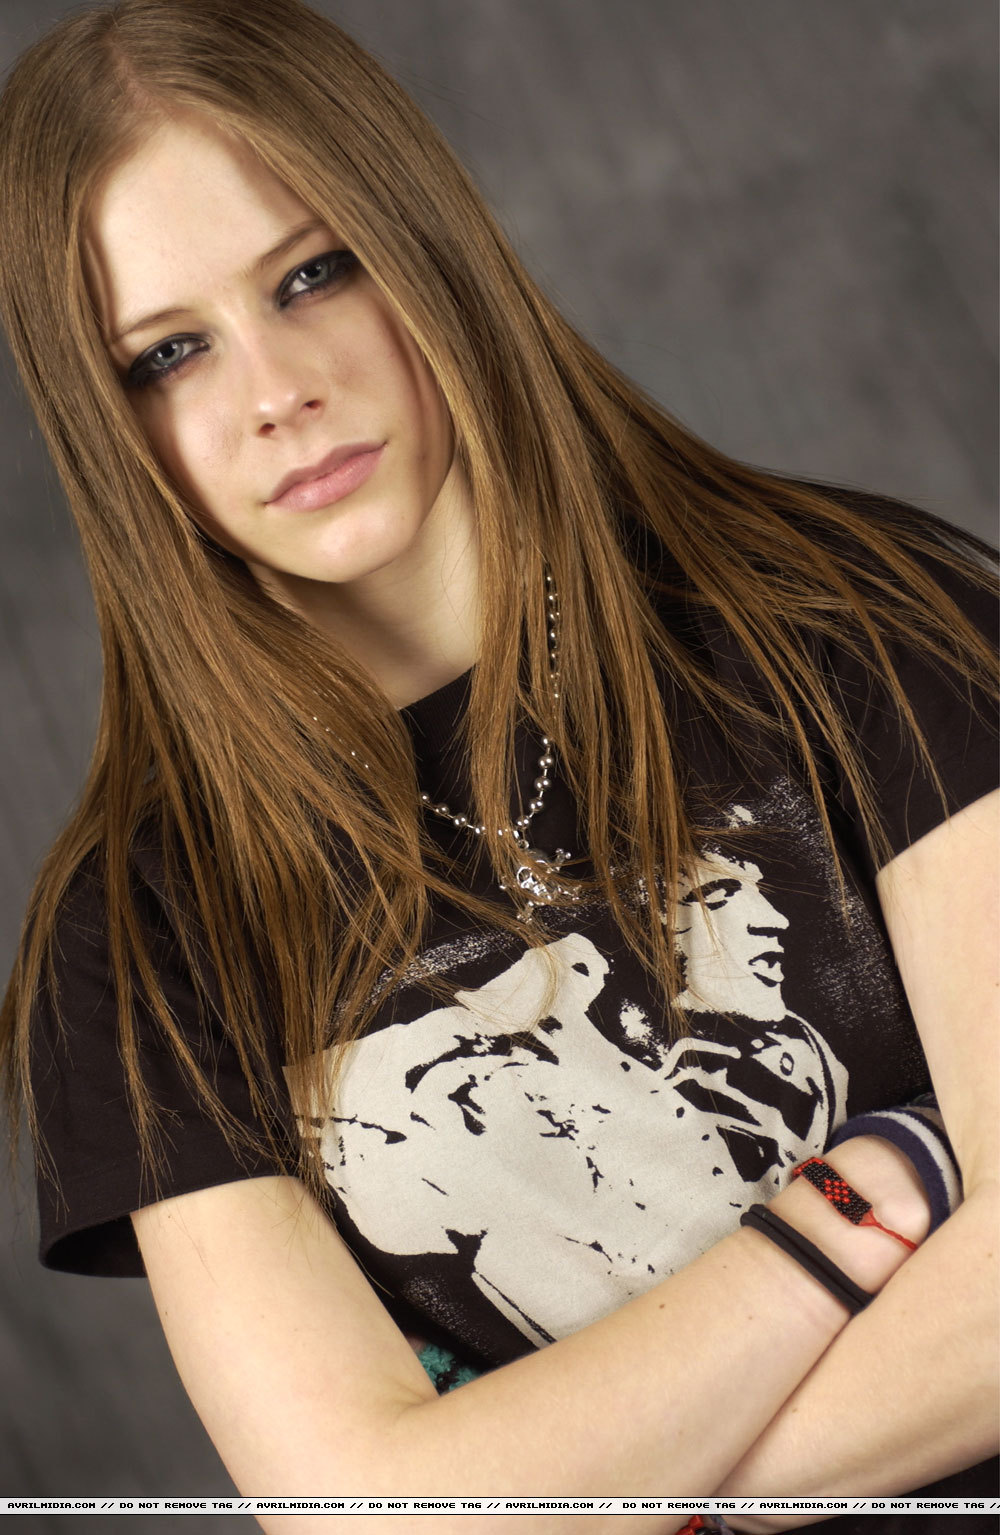 Avril Lavigne images ღ*Young♥Princess*ღ HD wallpaper and ... Avril Lavigne